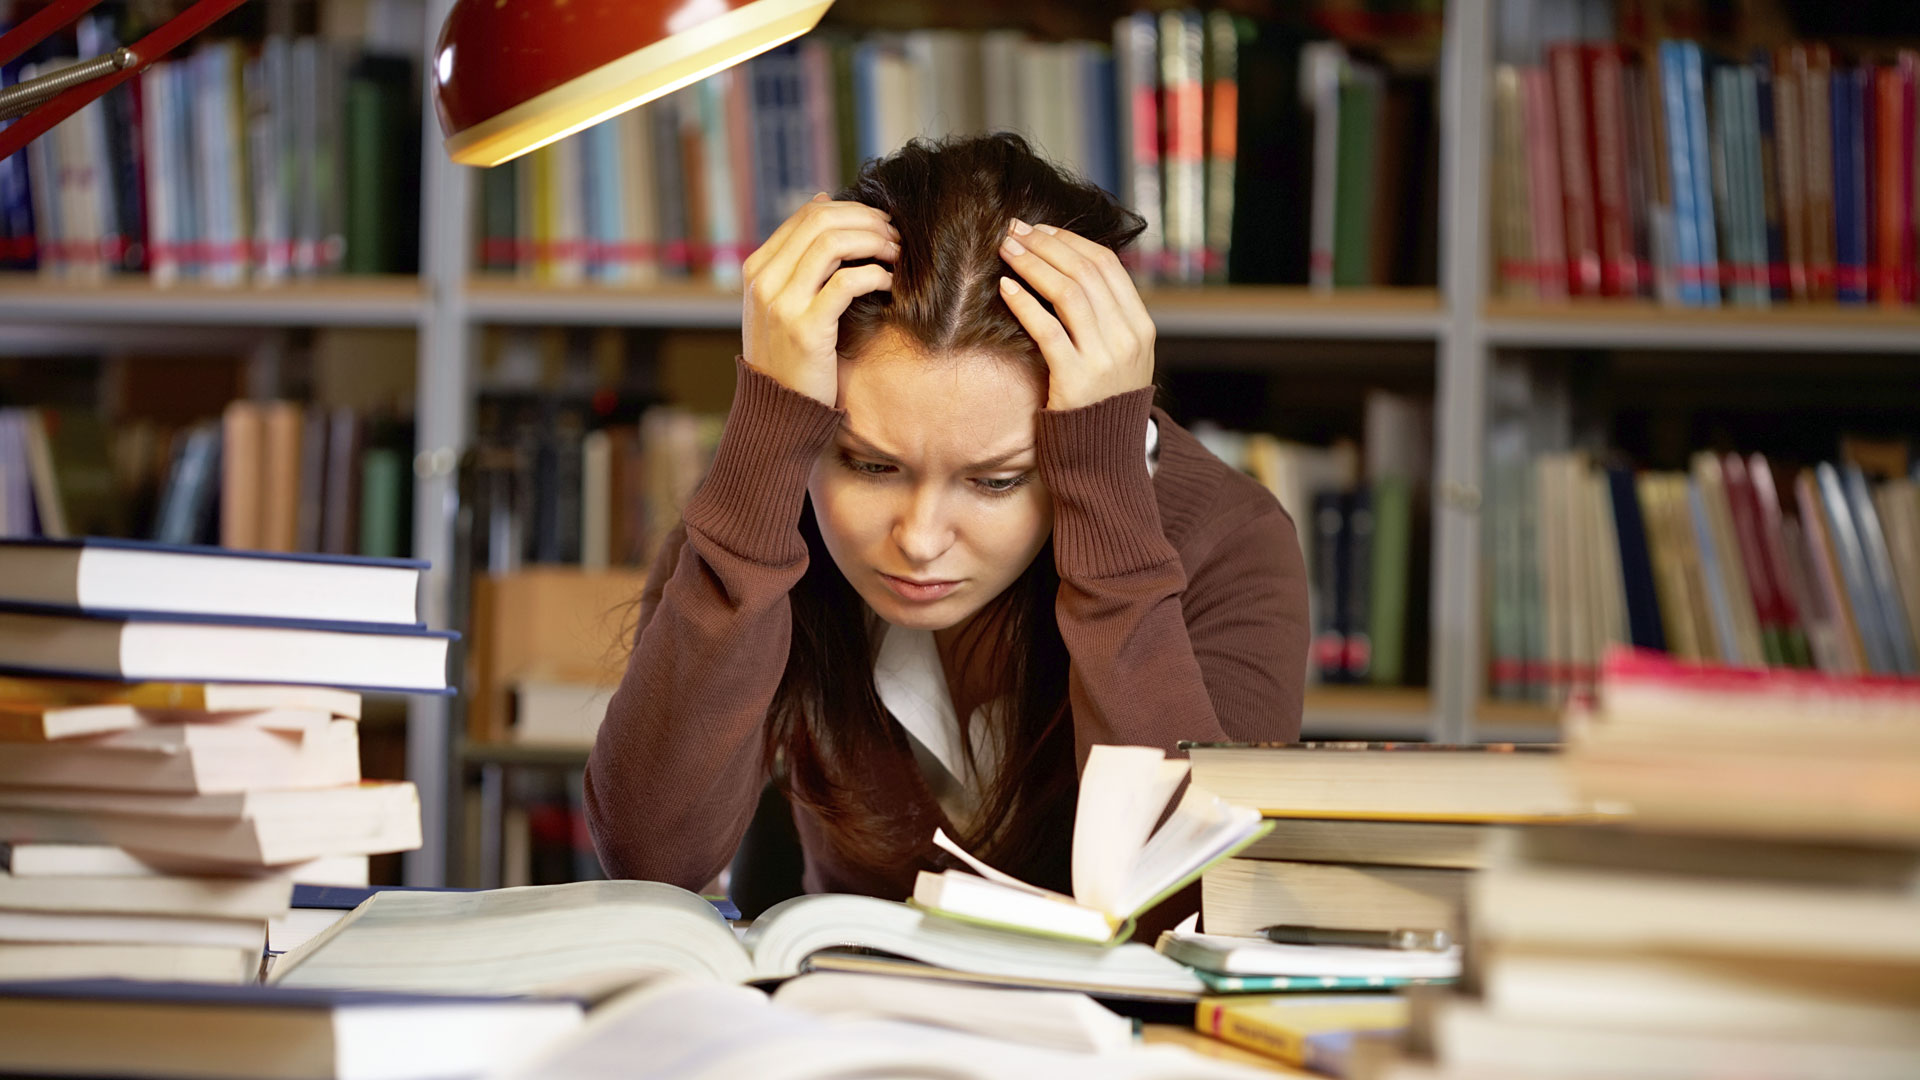 stress on students essay Introduction stress is a common problem that affects almost all of us at some point in our lives learning to identify when you are under stress, what is stressing you, and different ways of coping with stress can greatly improve both your mental and physical well being.